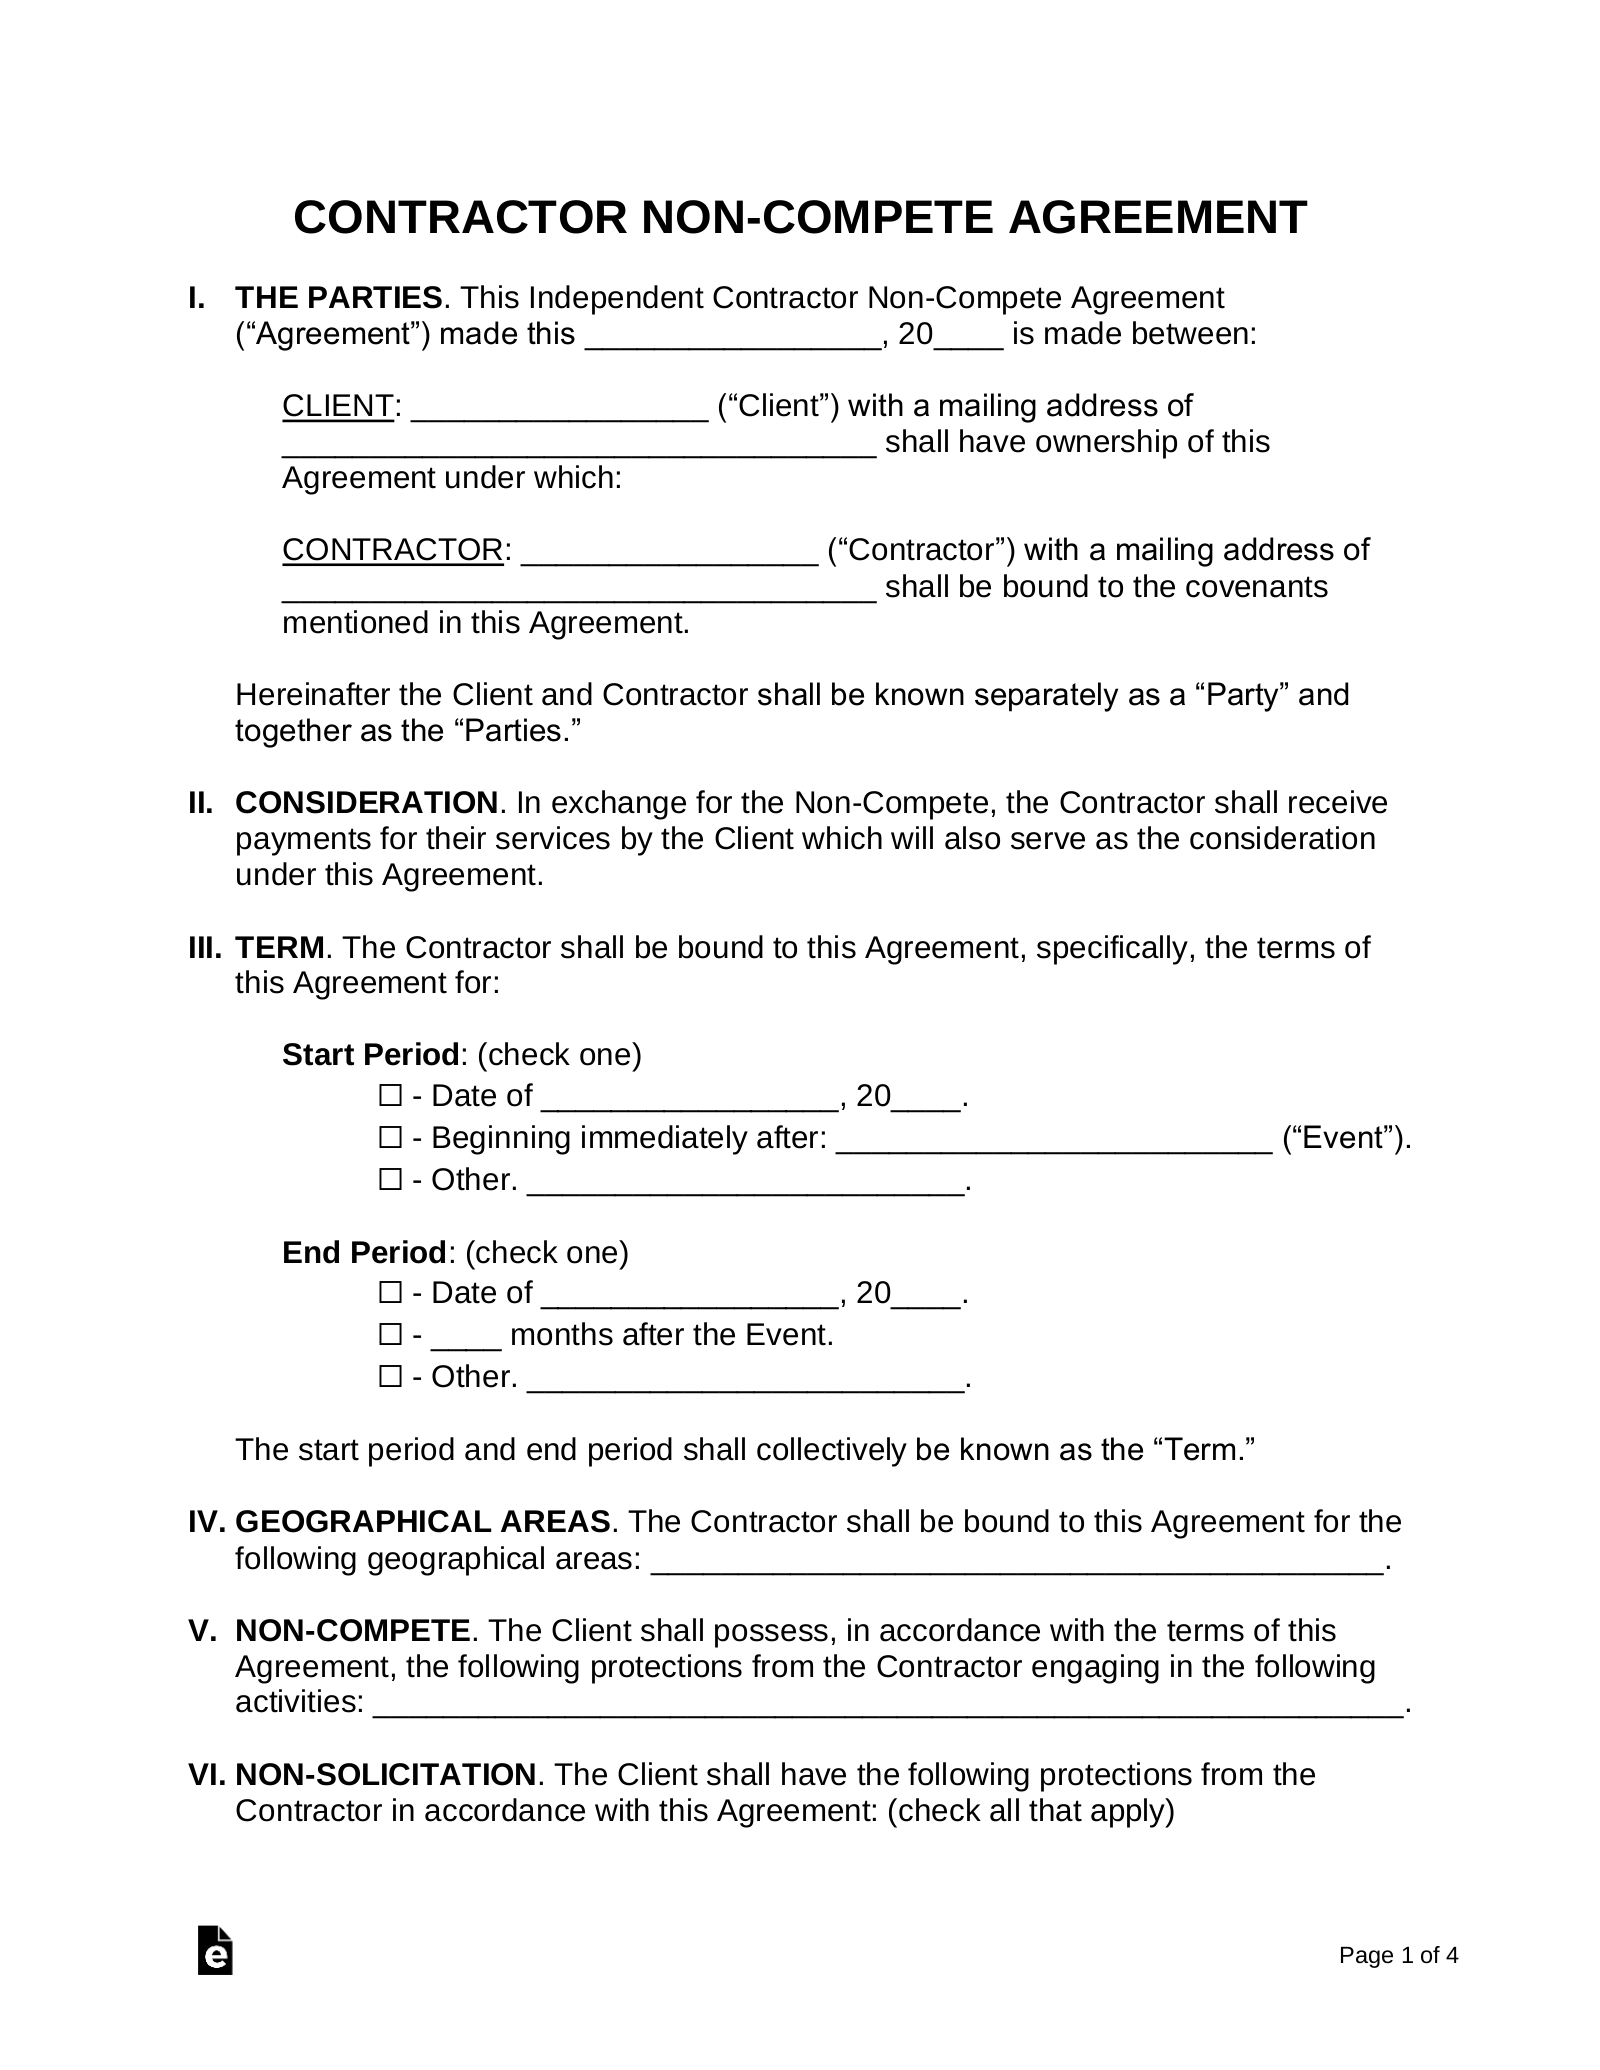 Independent Contractor Non Compete Agreement Template